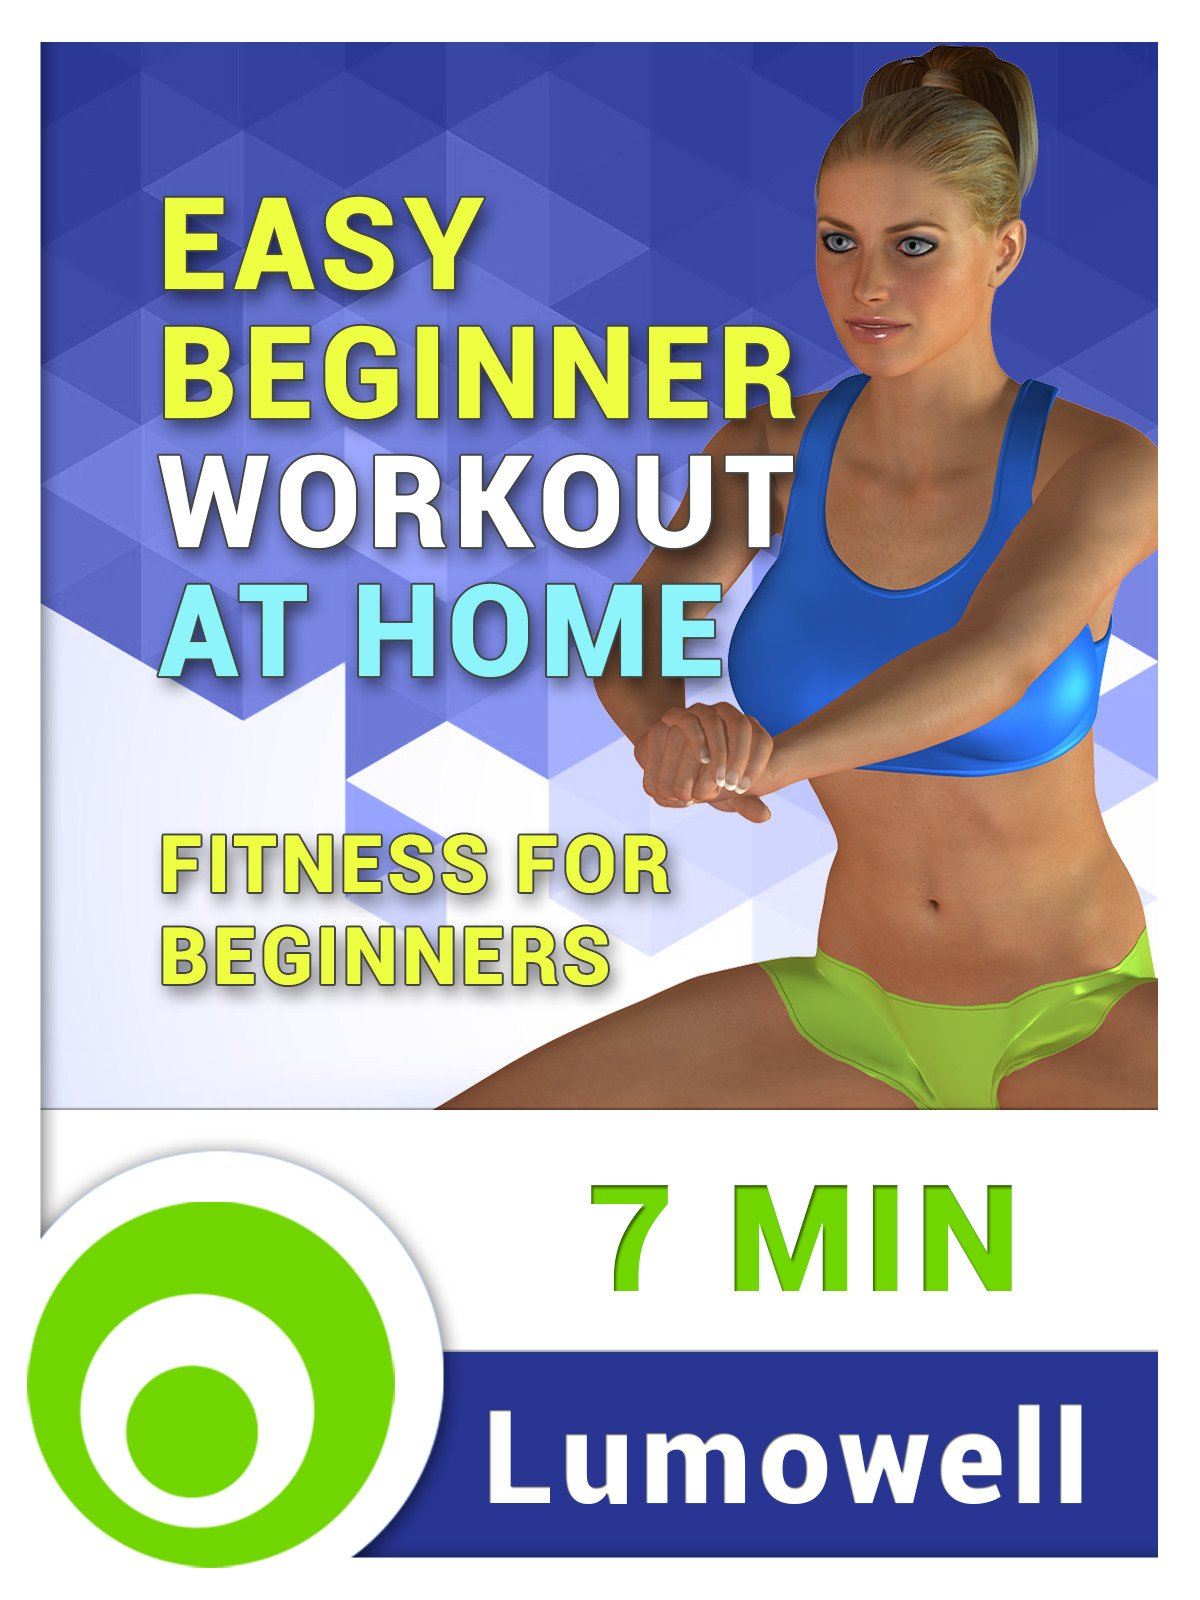 Easy Beginner Workout at Home